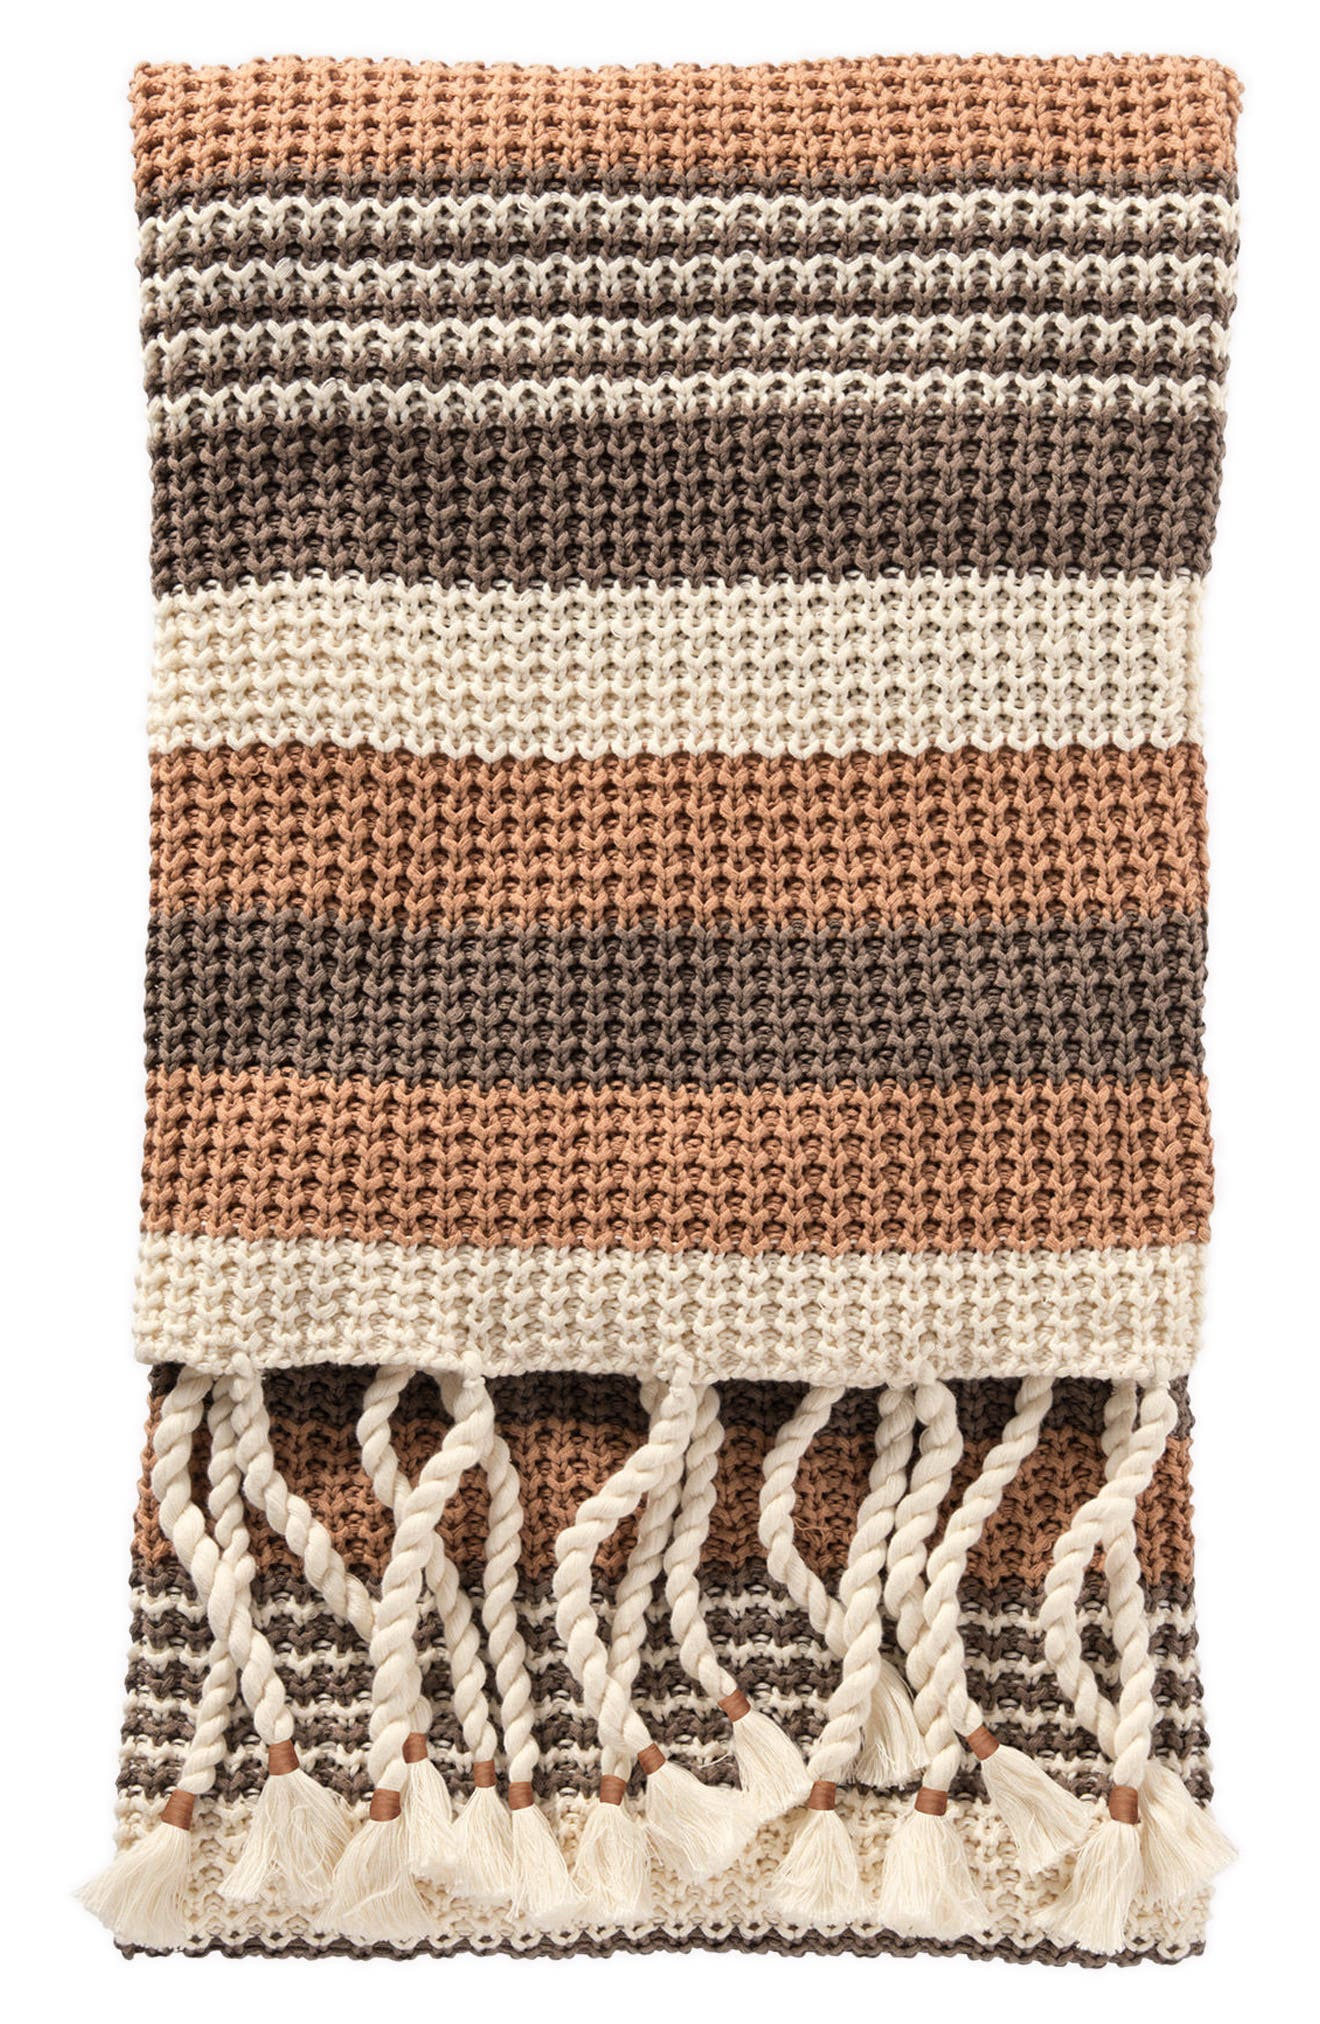 Horizon Stripe Knit Throw,                             Main thumbnail 1, color,                             TAN MULTI